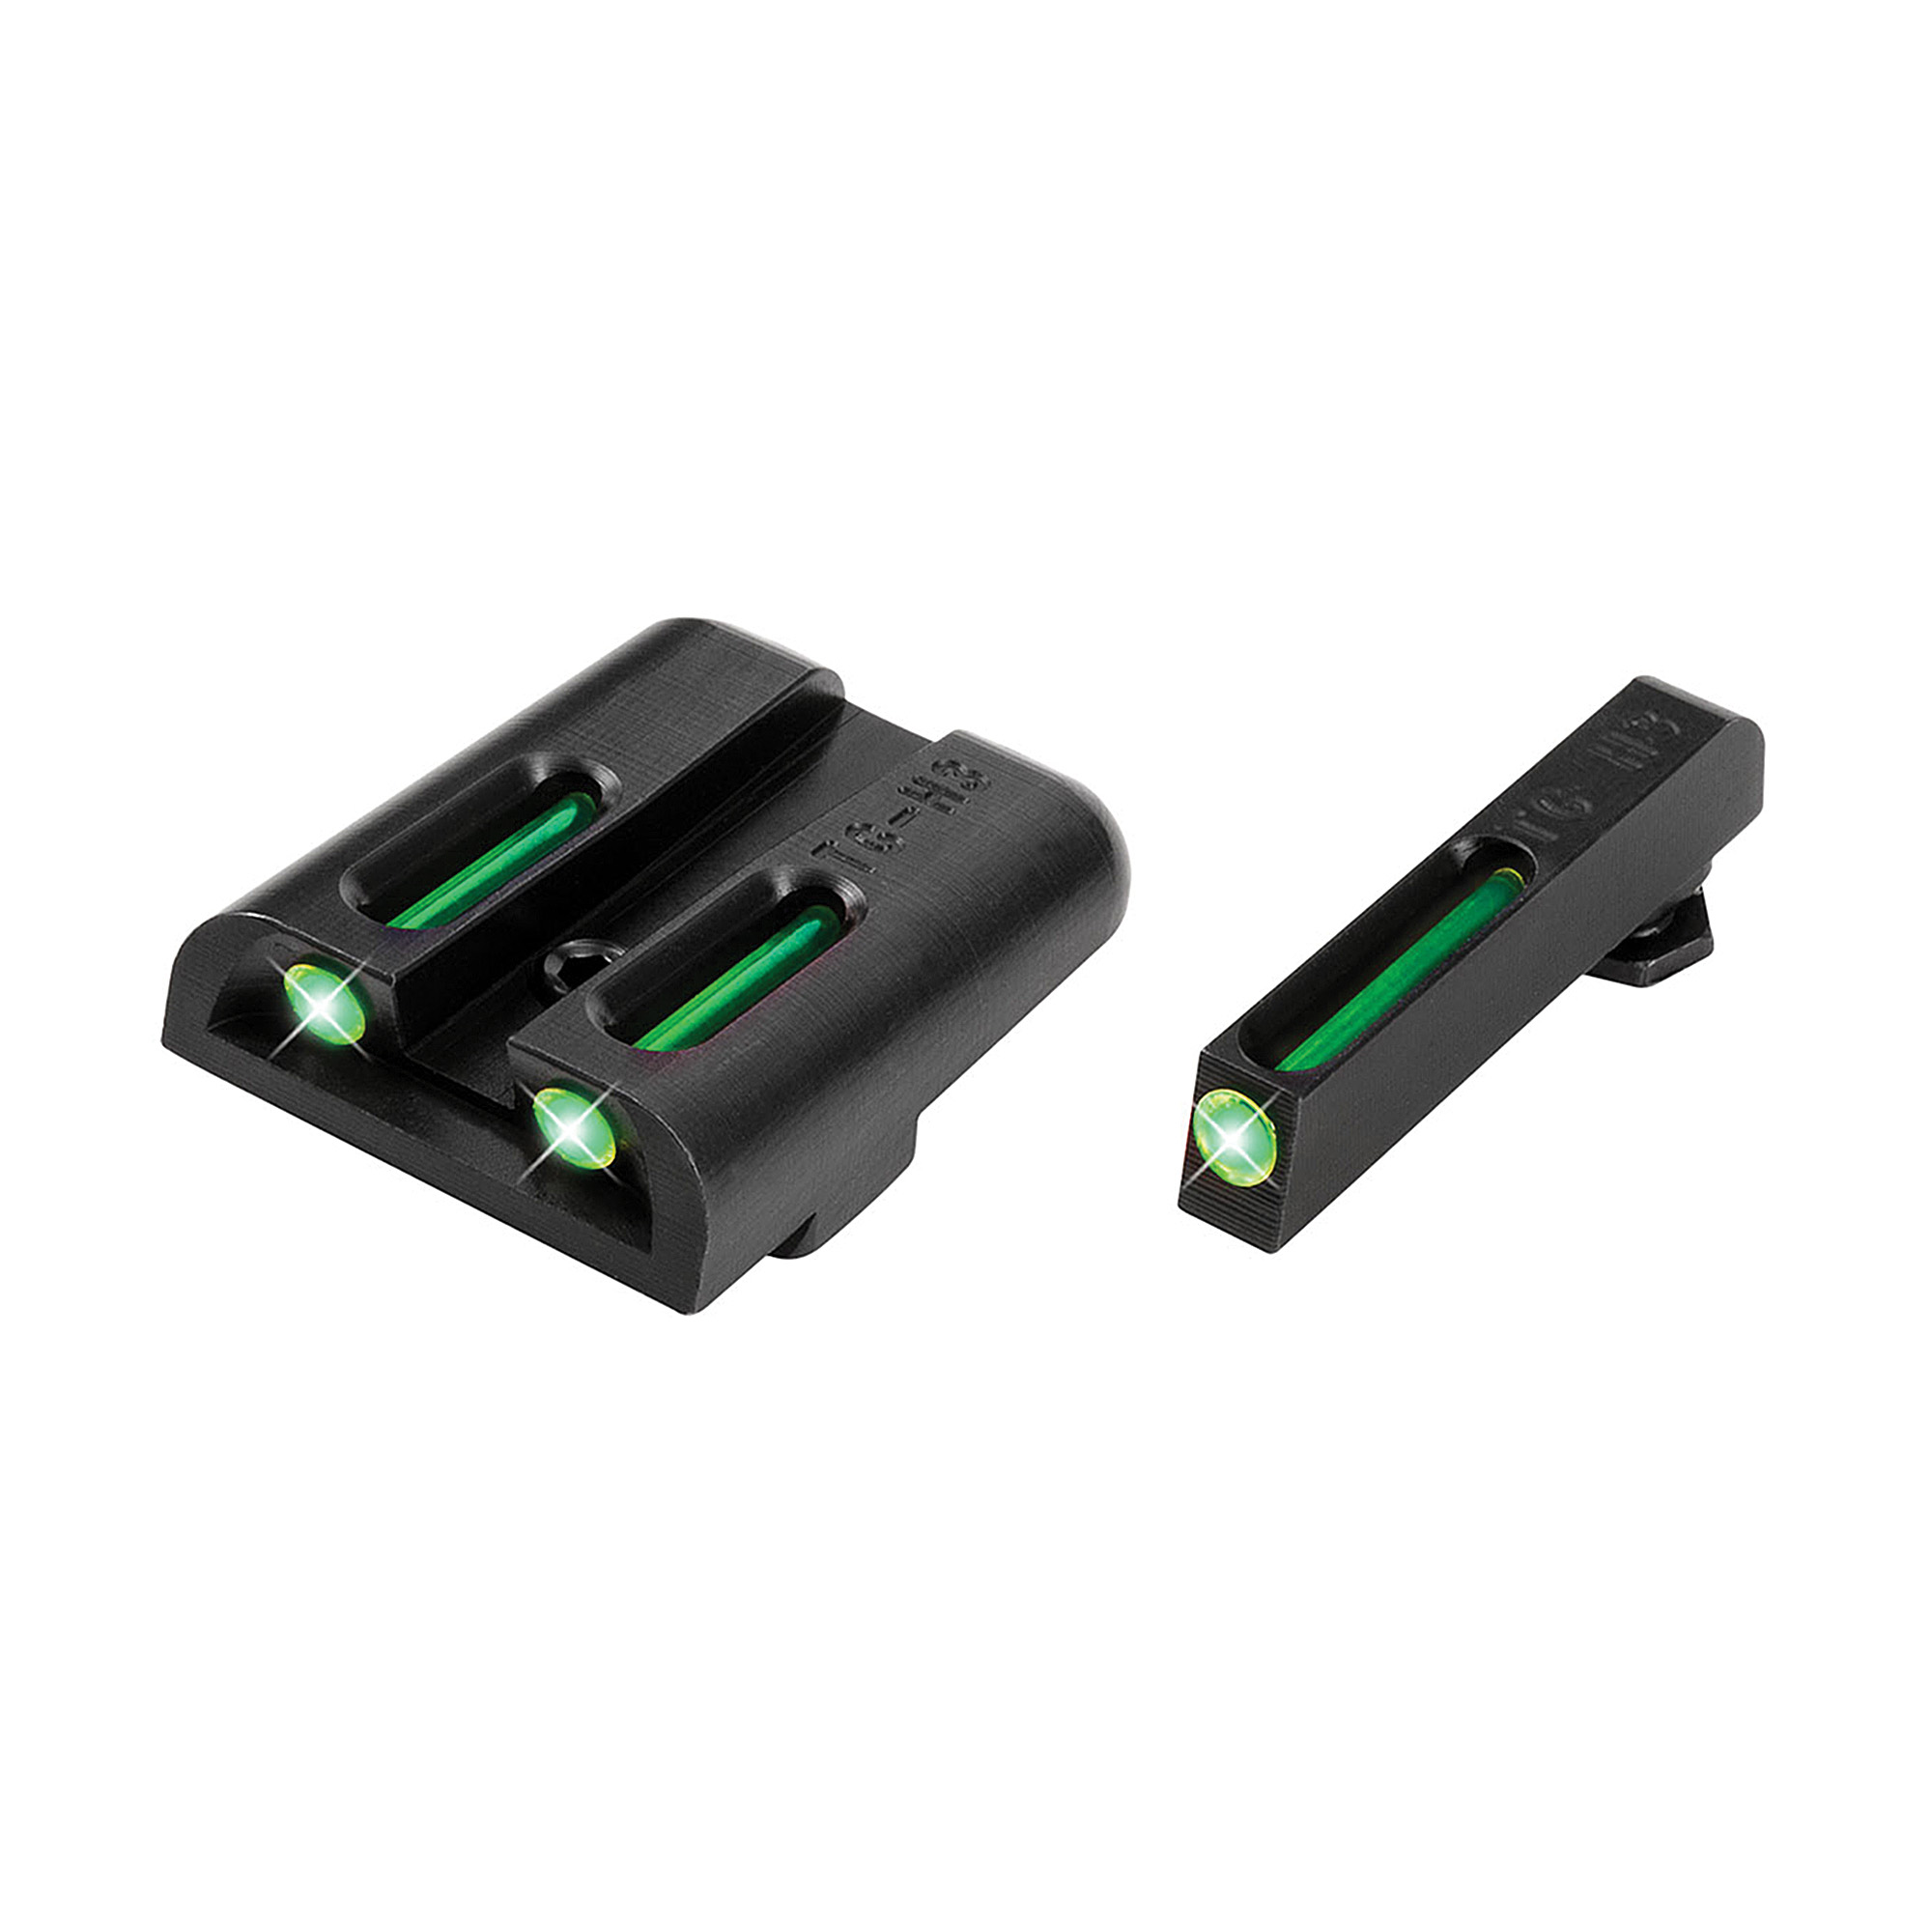 """Truglo Glock Low Set (Green/Green)- When you need to make a fast and accurate shot"""" brightness counts. They brought fiber-optics to the shooting sports industry years ago for this very reason. They have now paired them with their tritium night sights to create a consistently bright sight picture-day or night! Their patented combination of Tritium and Fiber-optic technologies unites the best of both worlds. Whether you are in glaring daylight or complete darkness"""" you can count on TFO(R) to provide a bright and reliable sight picture."""